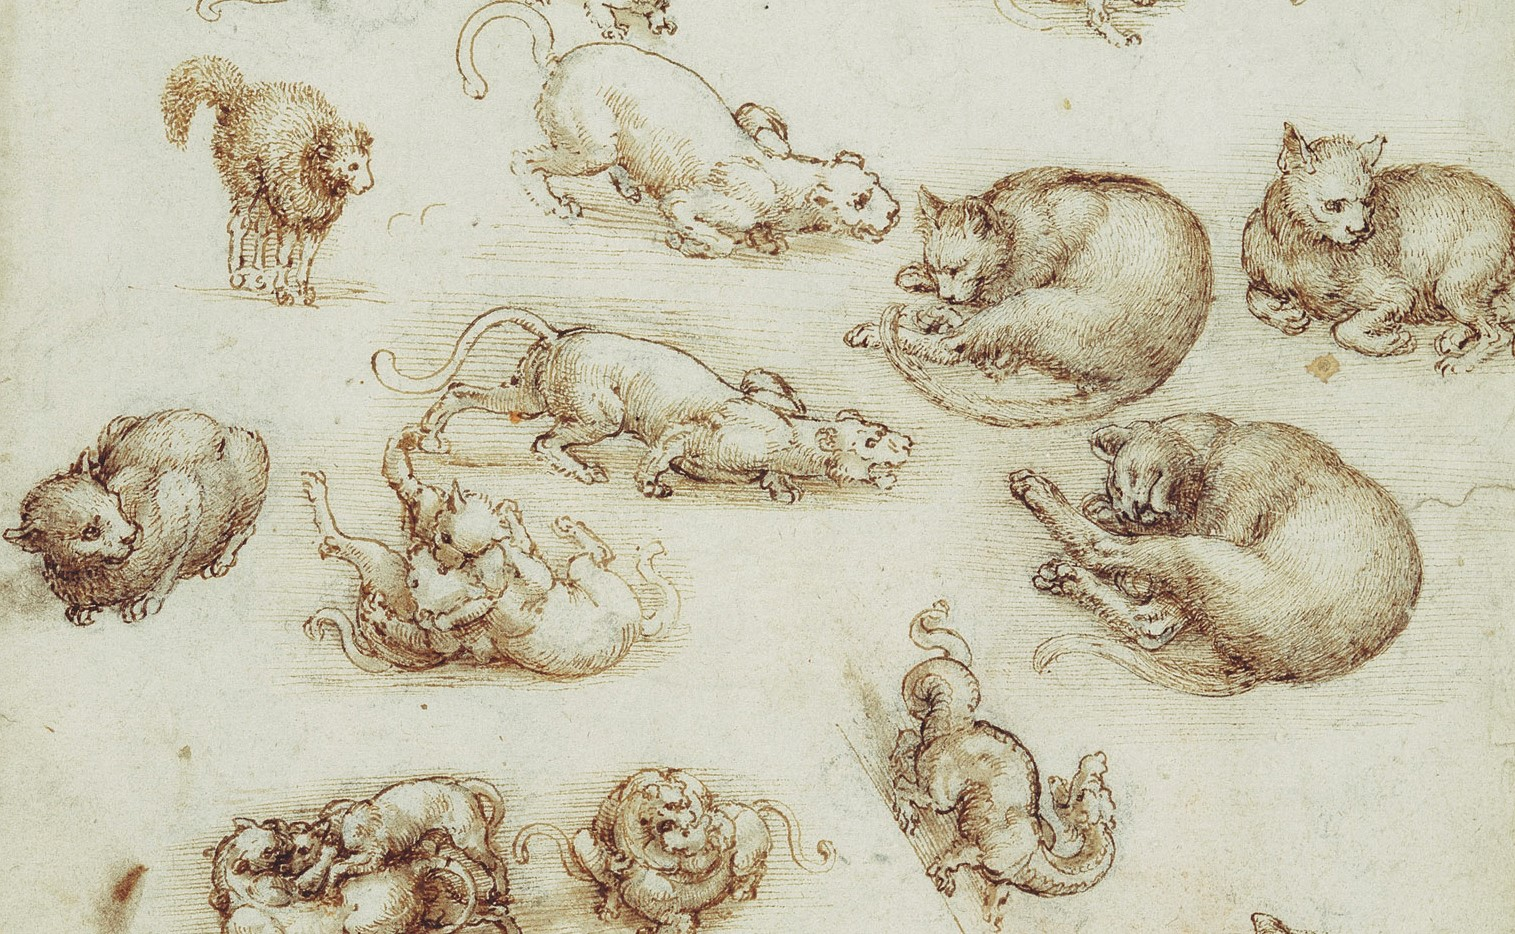 Ten Drawings by Leonardo da Vinci, star of the Renaissance, at the ...